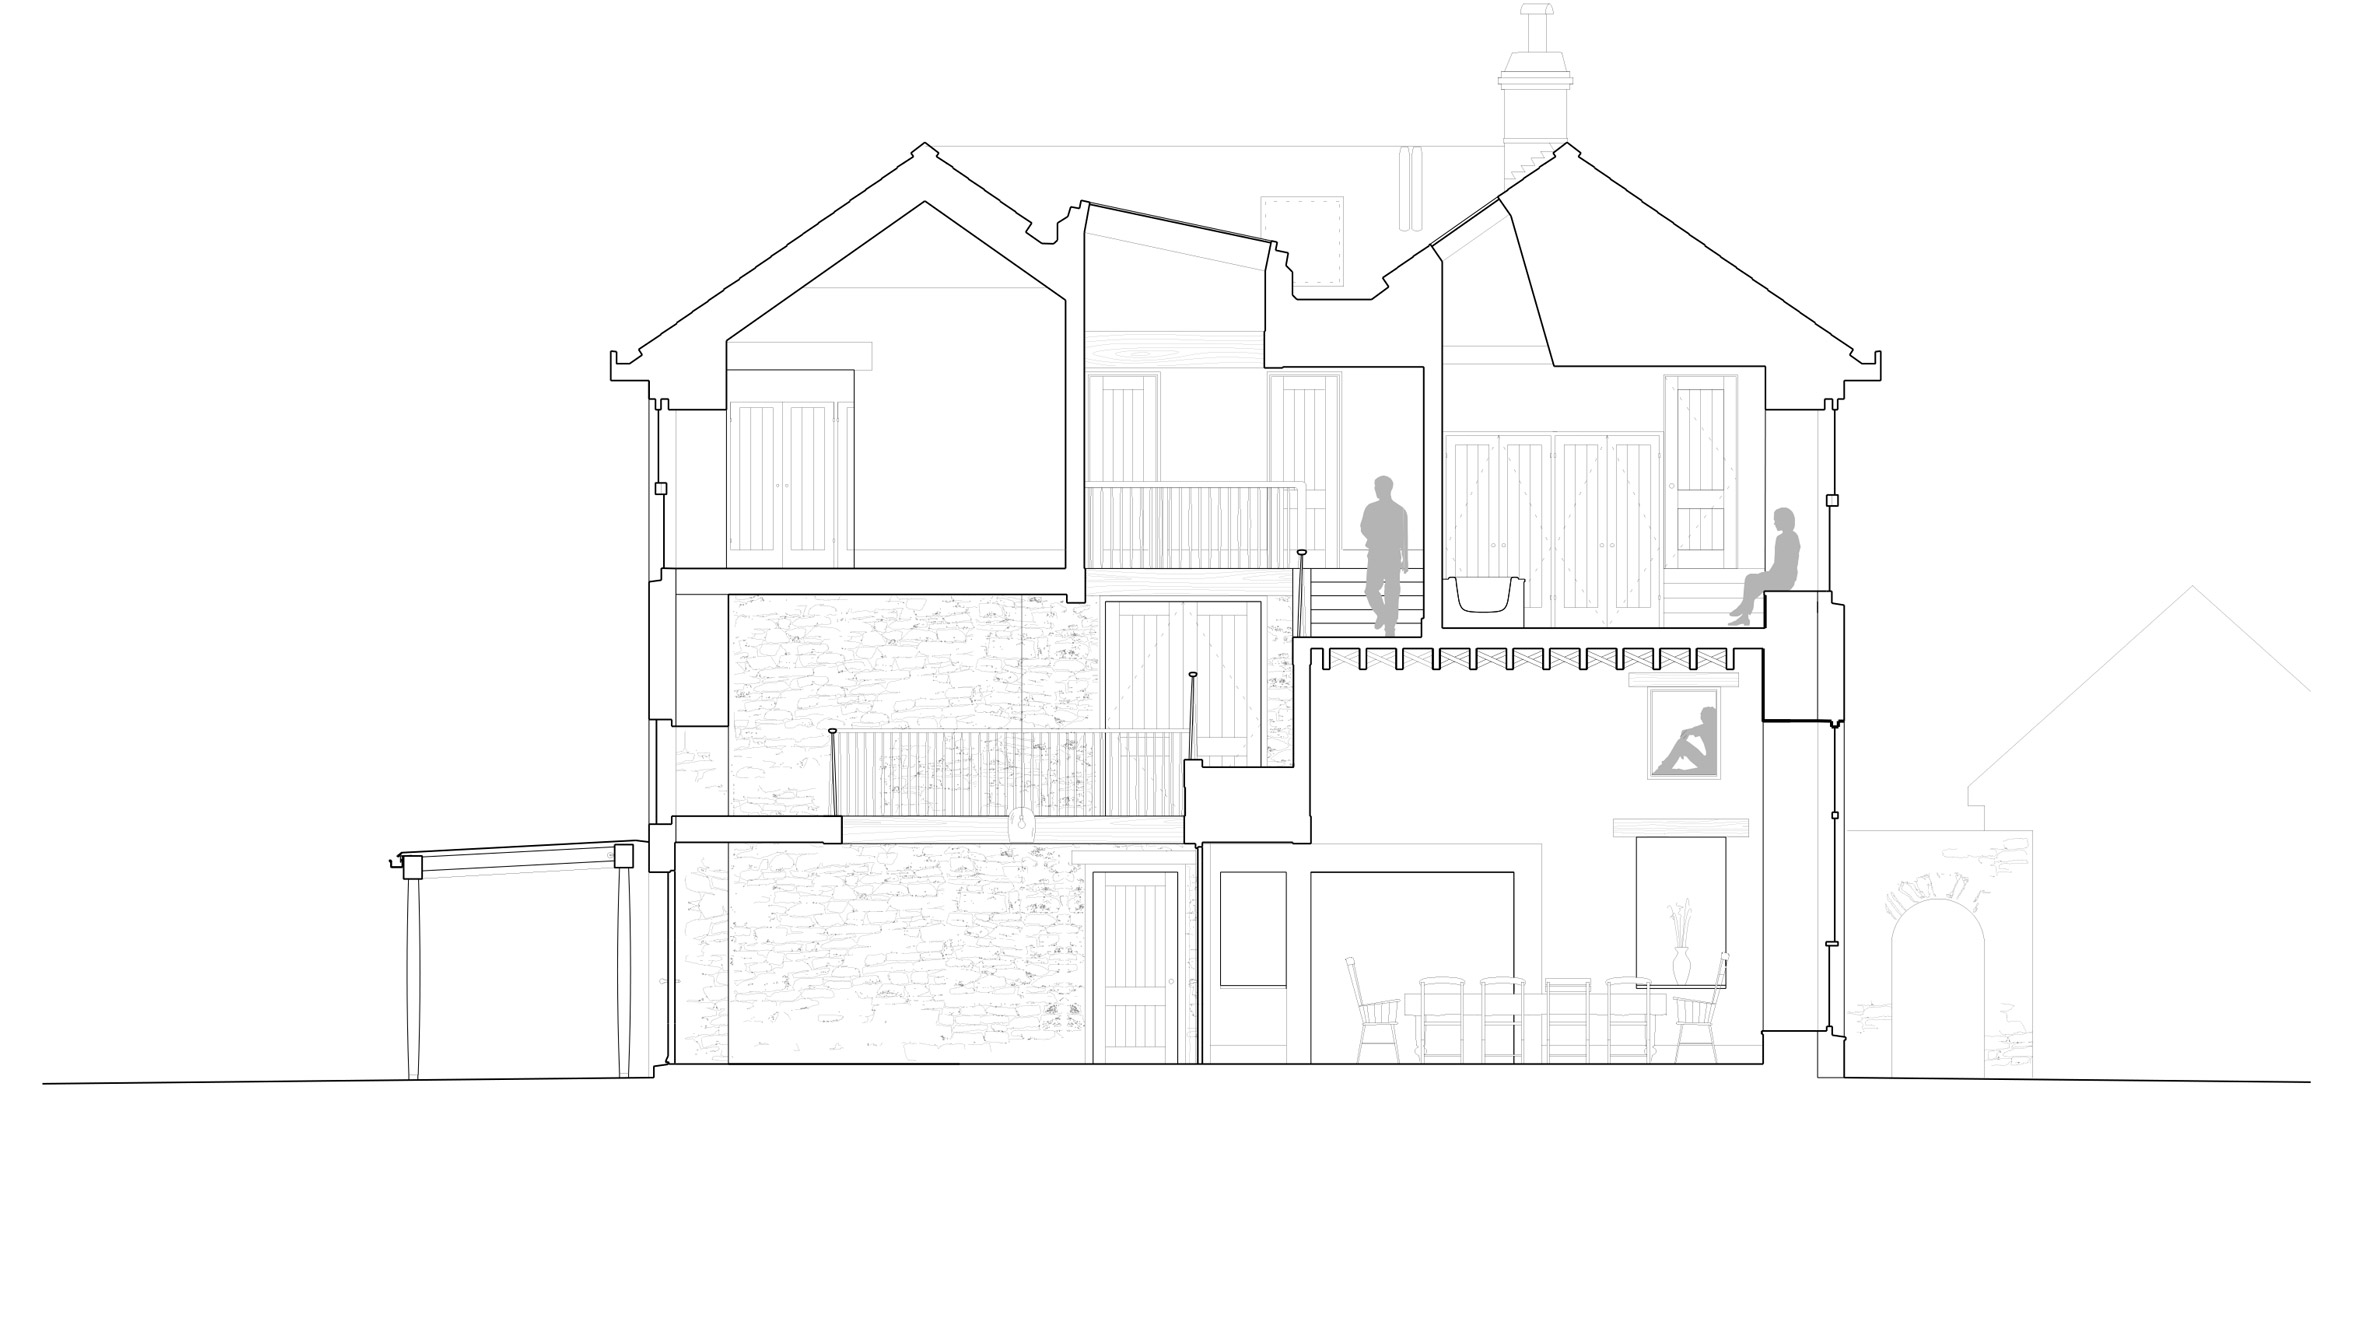 6a Architects creates bright living spaces in revamp of ... on artisan house plans, indies house plans, devon house plans, design source house plans, guam house plans, vampire house plans, celtic house plans, whitmore house plans, bearden house plans, summer camp house plans, southampton house plans, almas house plans, rome house plans, americas house plans, canterbury house plans, pacific northwest house plans, holloway house plans, switzerland house plans, norway house plans, egypt house plans,